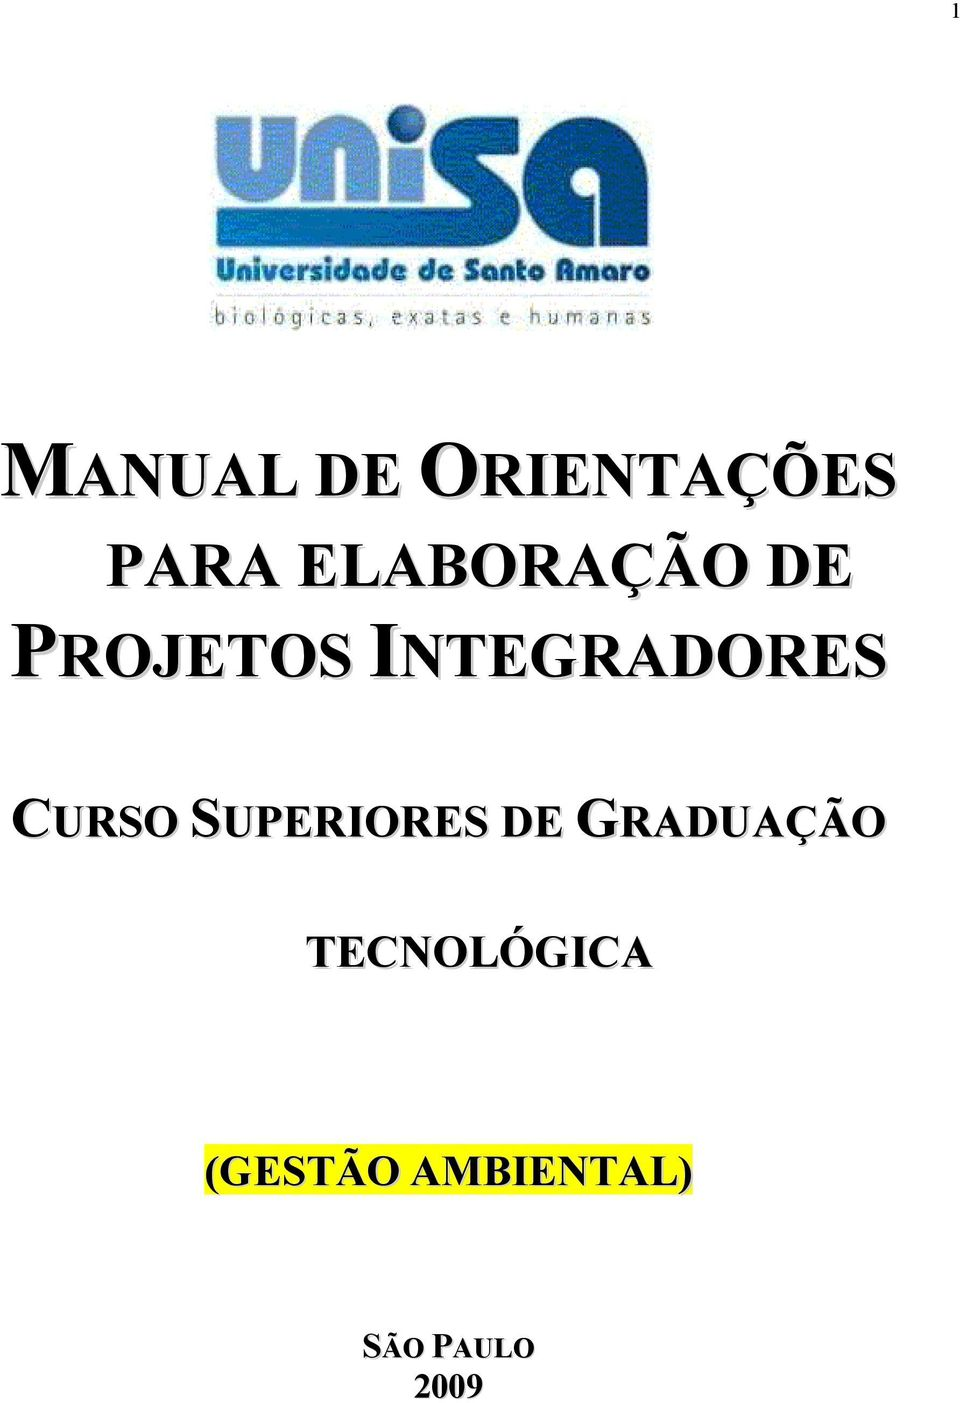 INTEGRADORES CURSO SUPERIORES DE